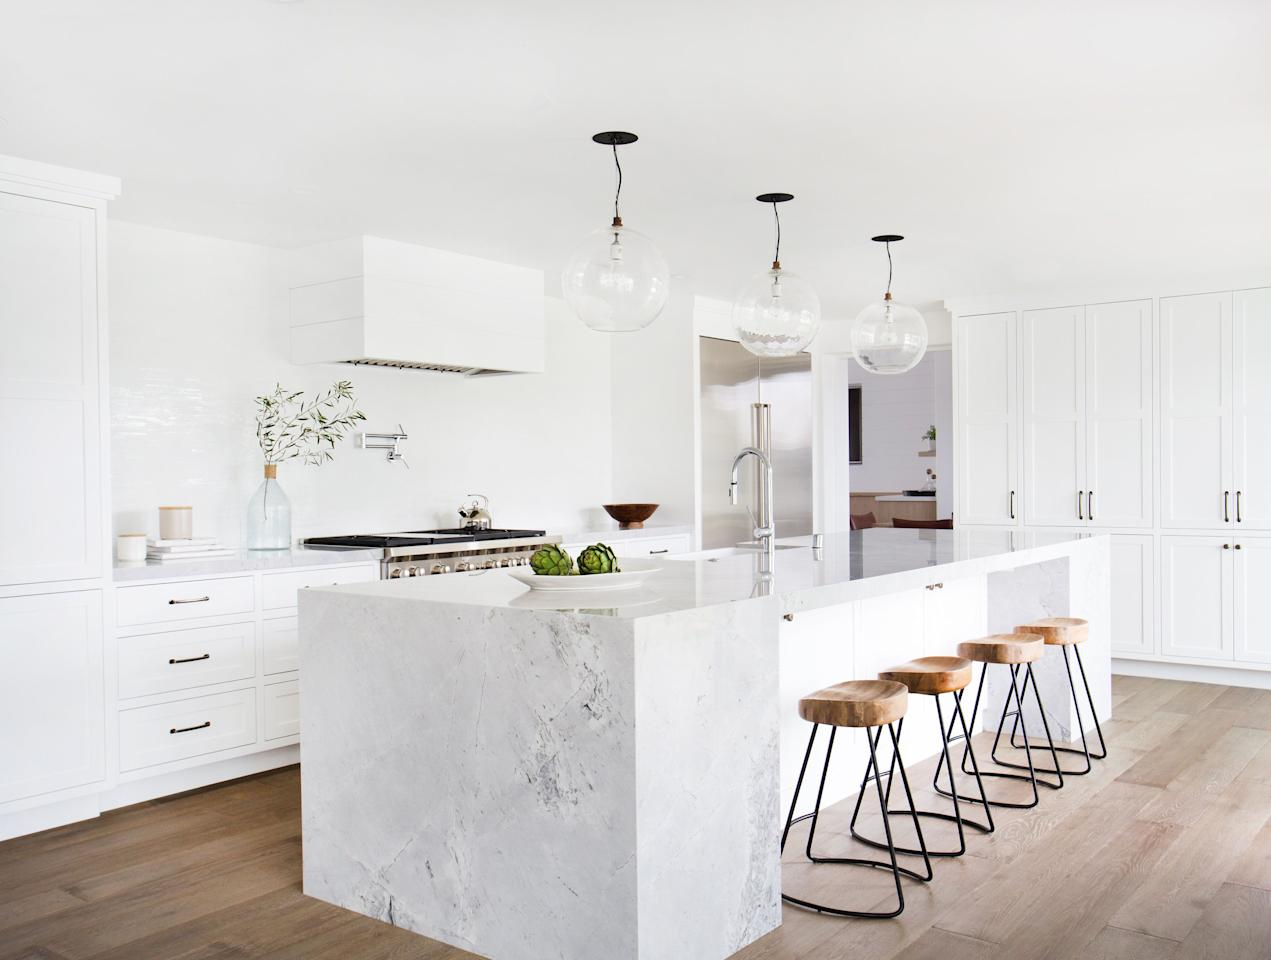 "<p>White kitchens are classic. They're bright, clean, and don't require a lot of stressful color decisions when decorating (because literally, everything is white).  But white doesn't have to equal boring. We've got some inspiration for you from some <a rel=""nofollow"" href=""http://www.housebeautiful.com/room-decorating/kitchens/g623/beautiful-designer-kitchens"">insanely cool kitchens</a>, and we promise no matter what your decorating style, you'll find something on this list you like.</p>"